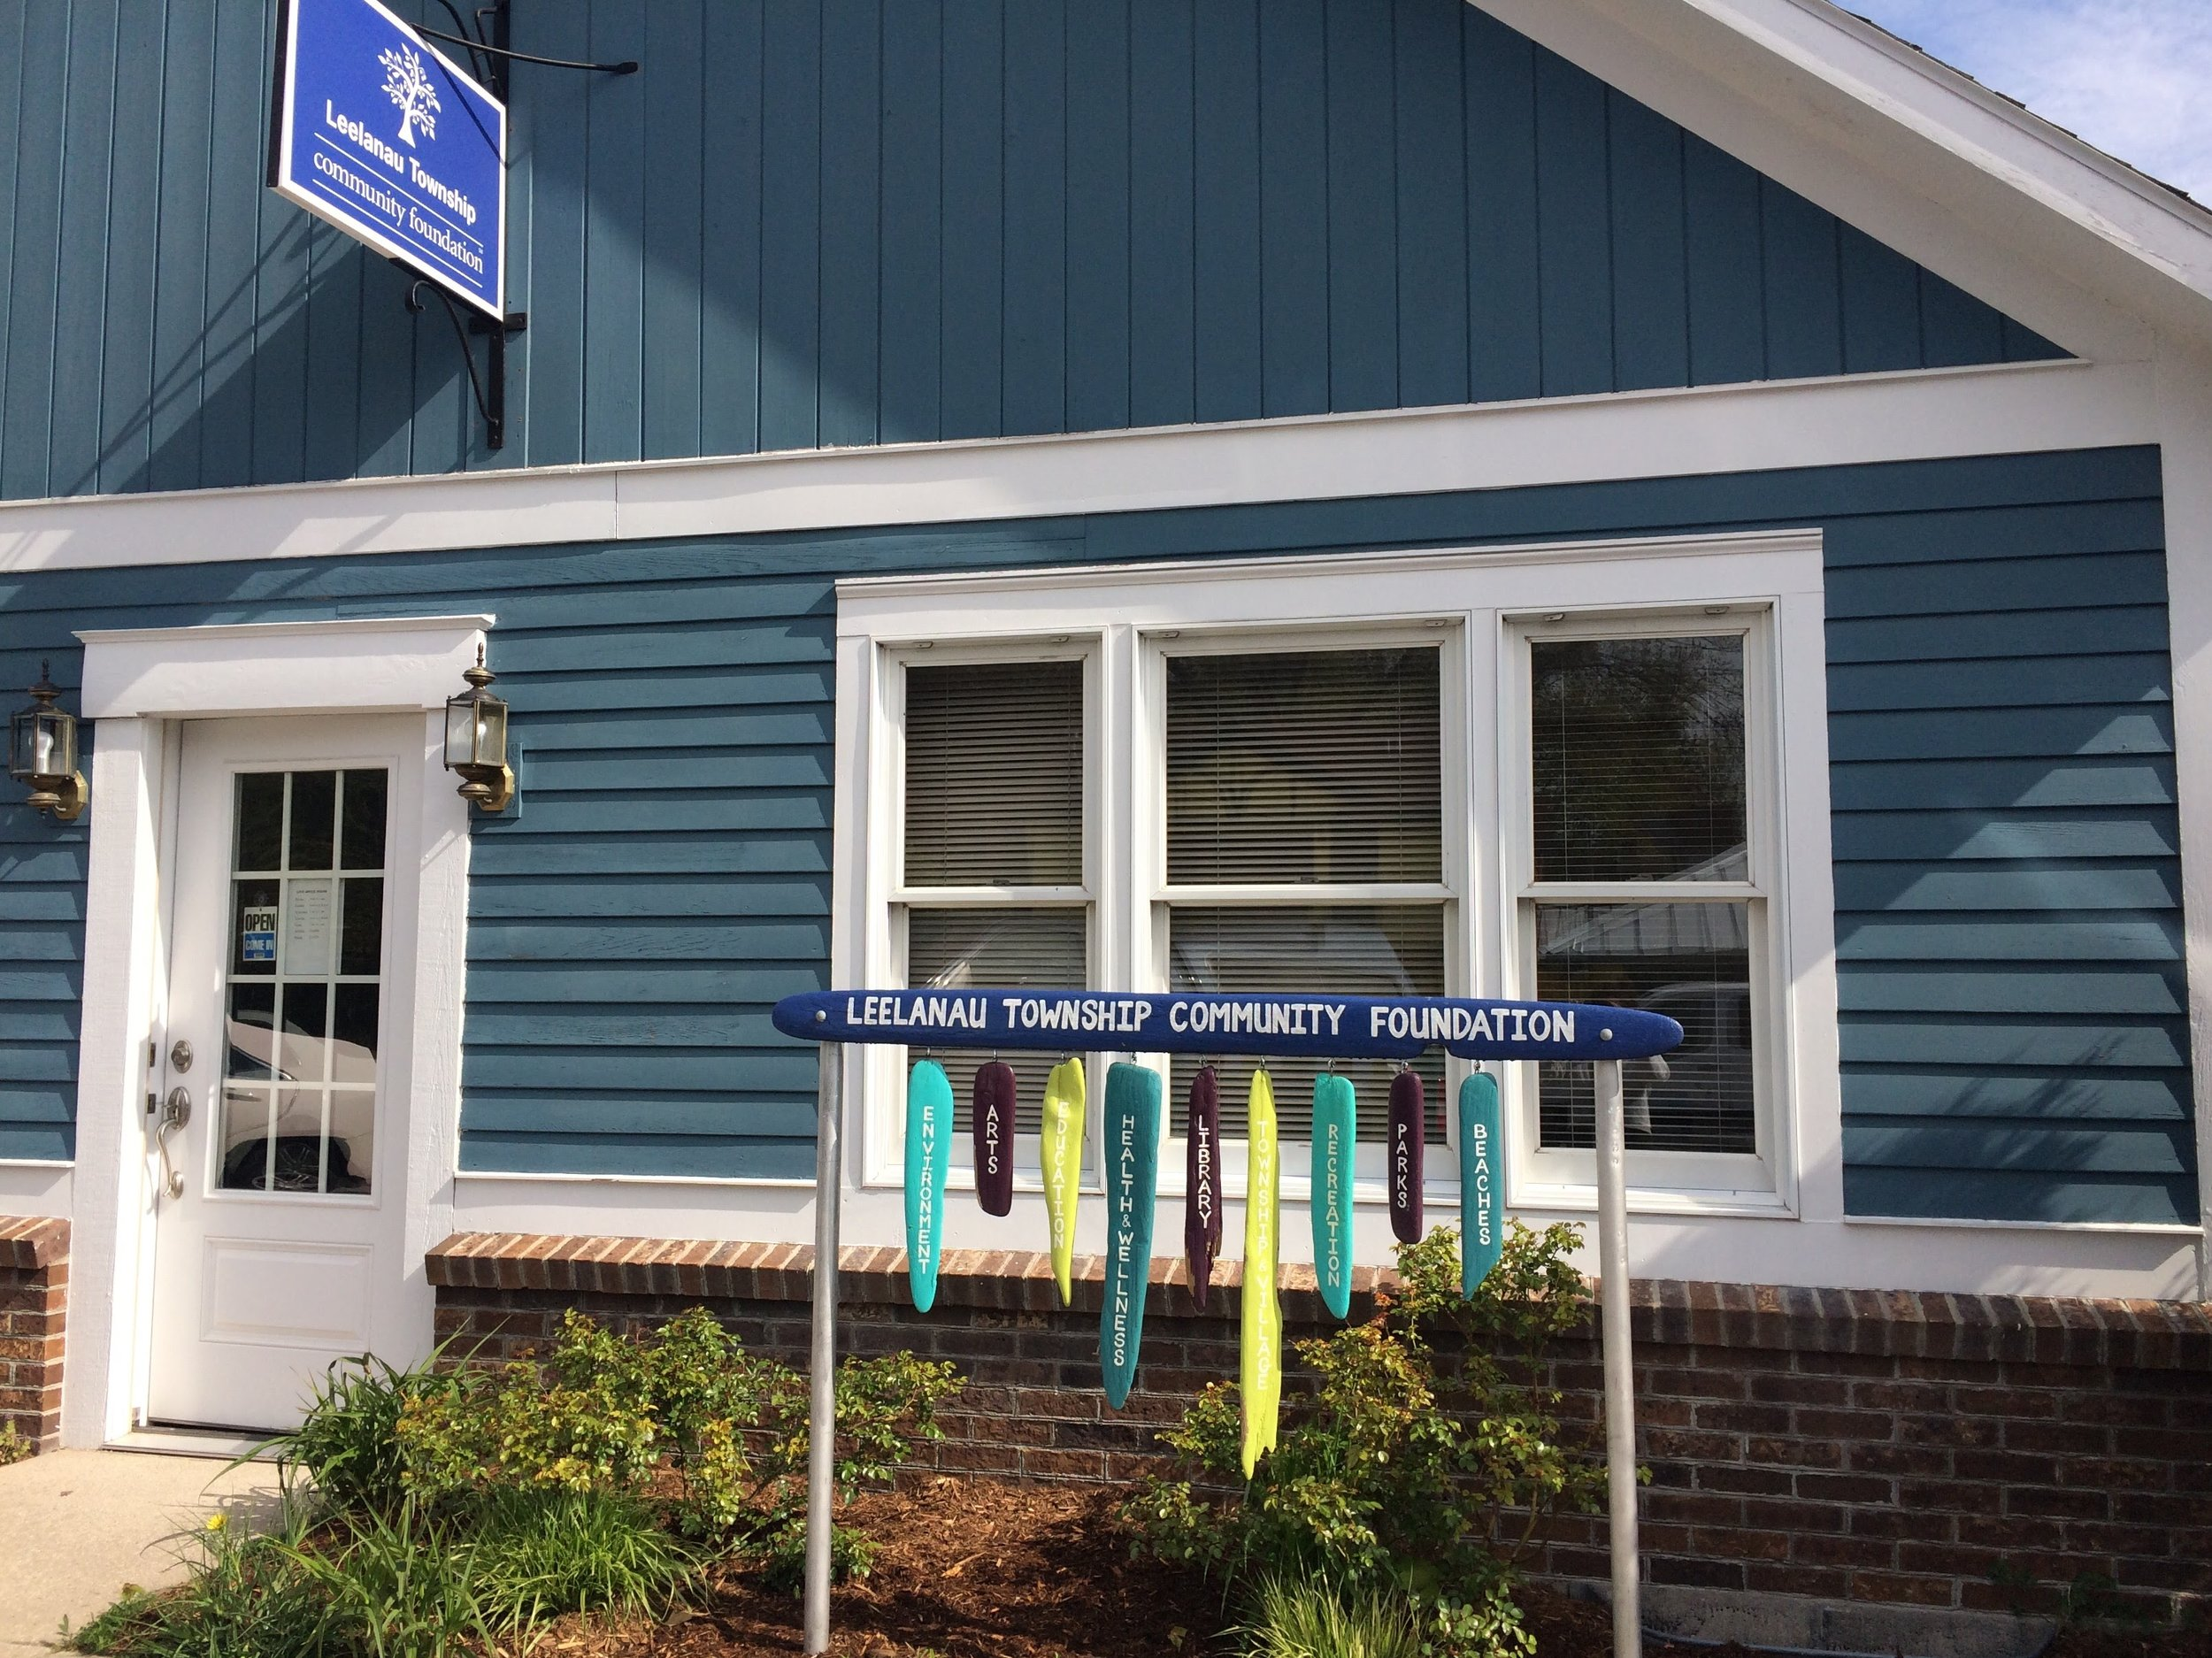 Our new office on 301 Mill Street in Northport! The driftwood sign, created by artist Julie Glidden for the foundation's 70th year celebration, captured the many areas of community interest that the foundation has supported since it was founded in 1945.